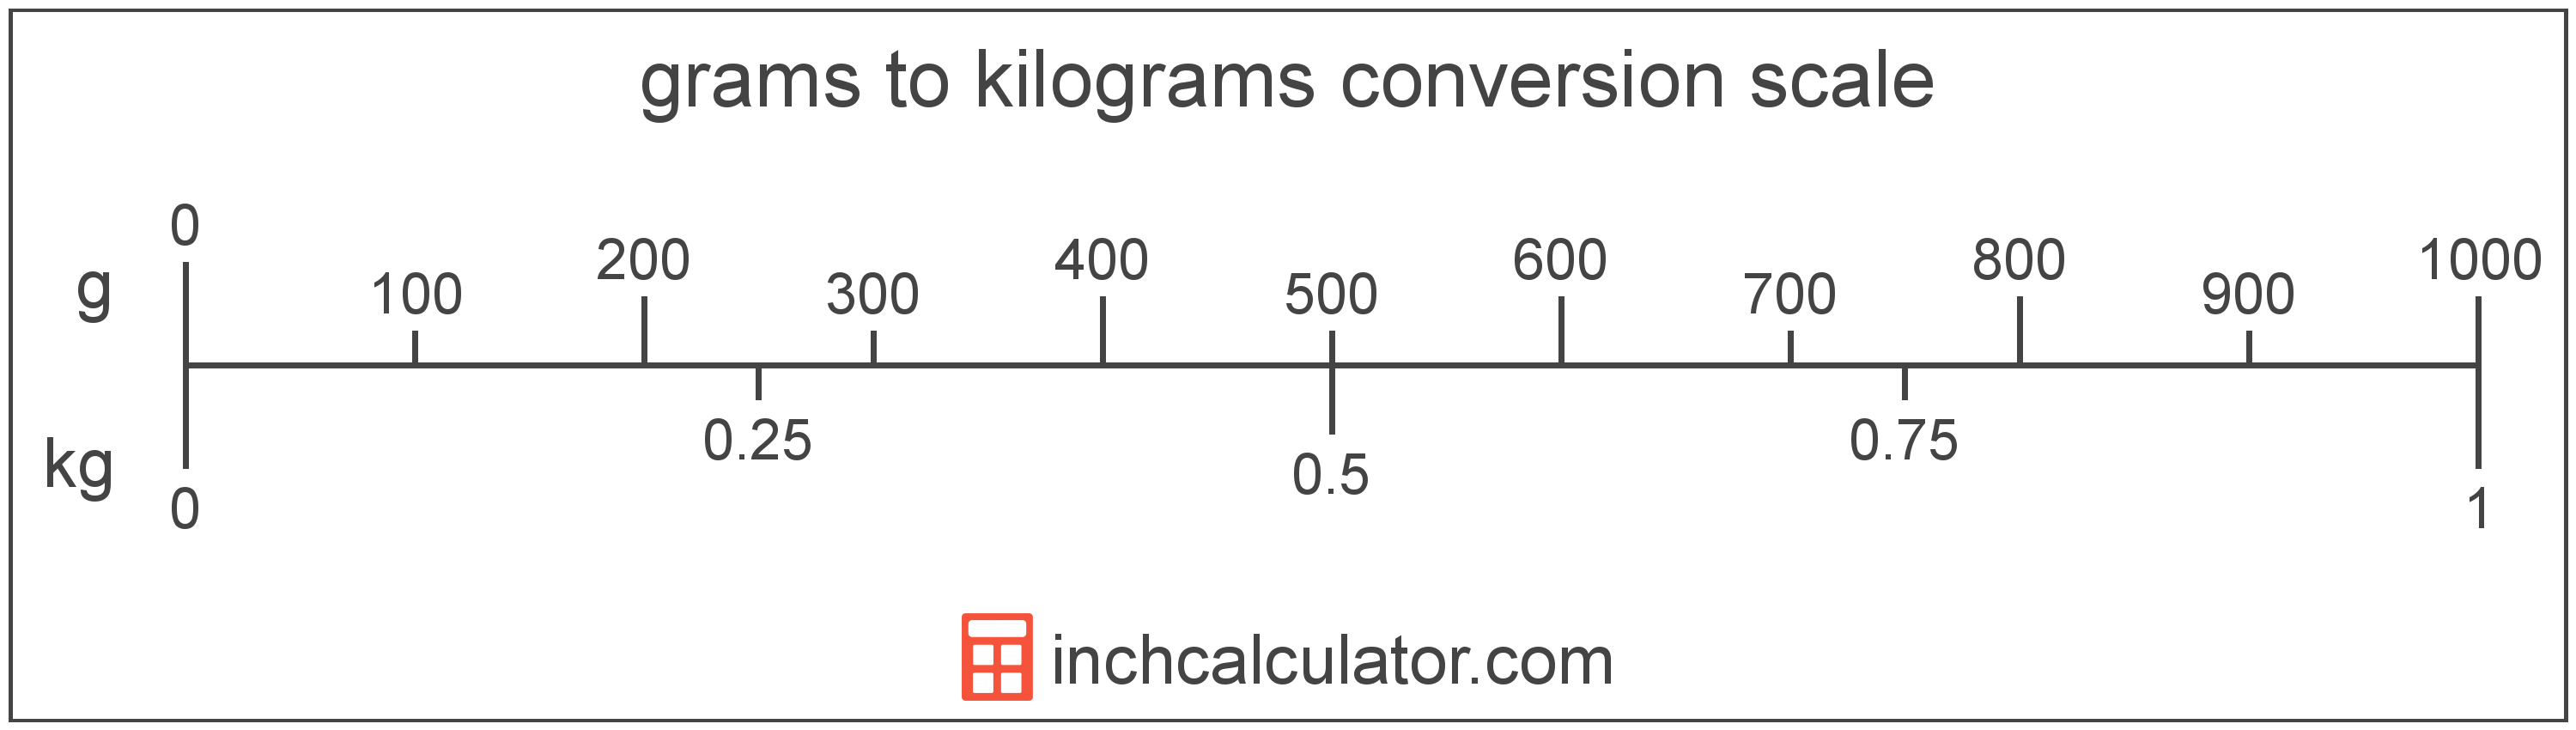 conversion scale showing grams and equivalent kilograms weight values